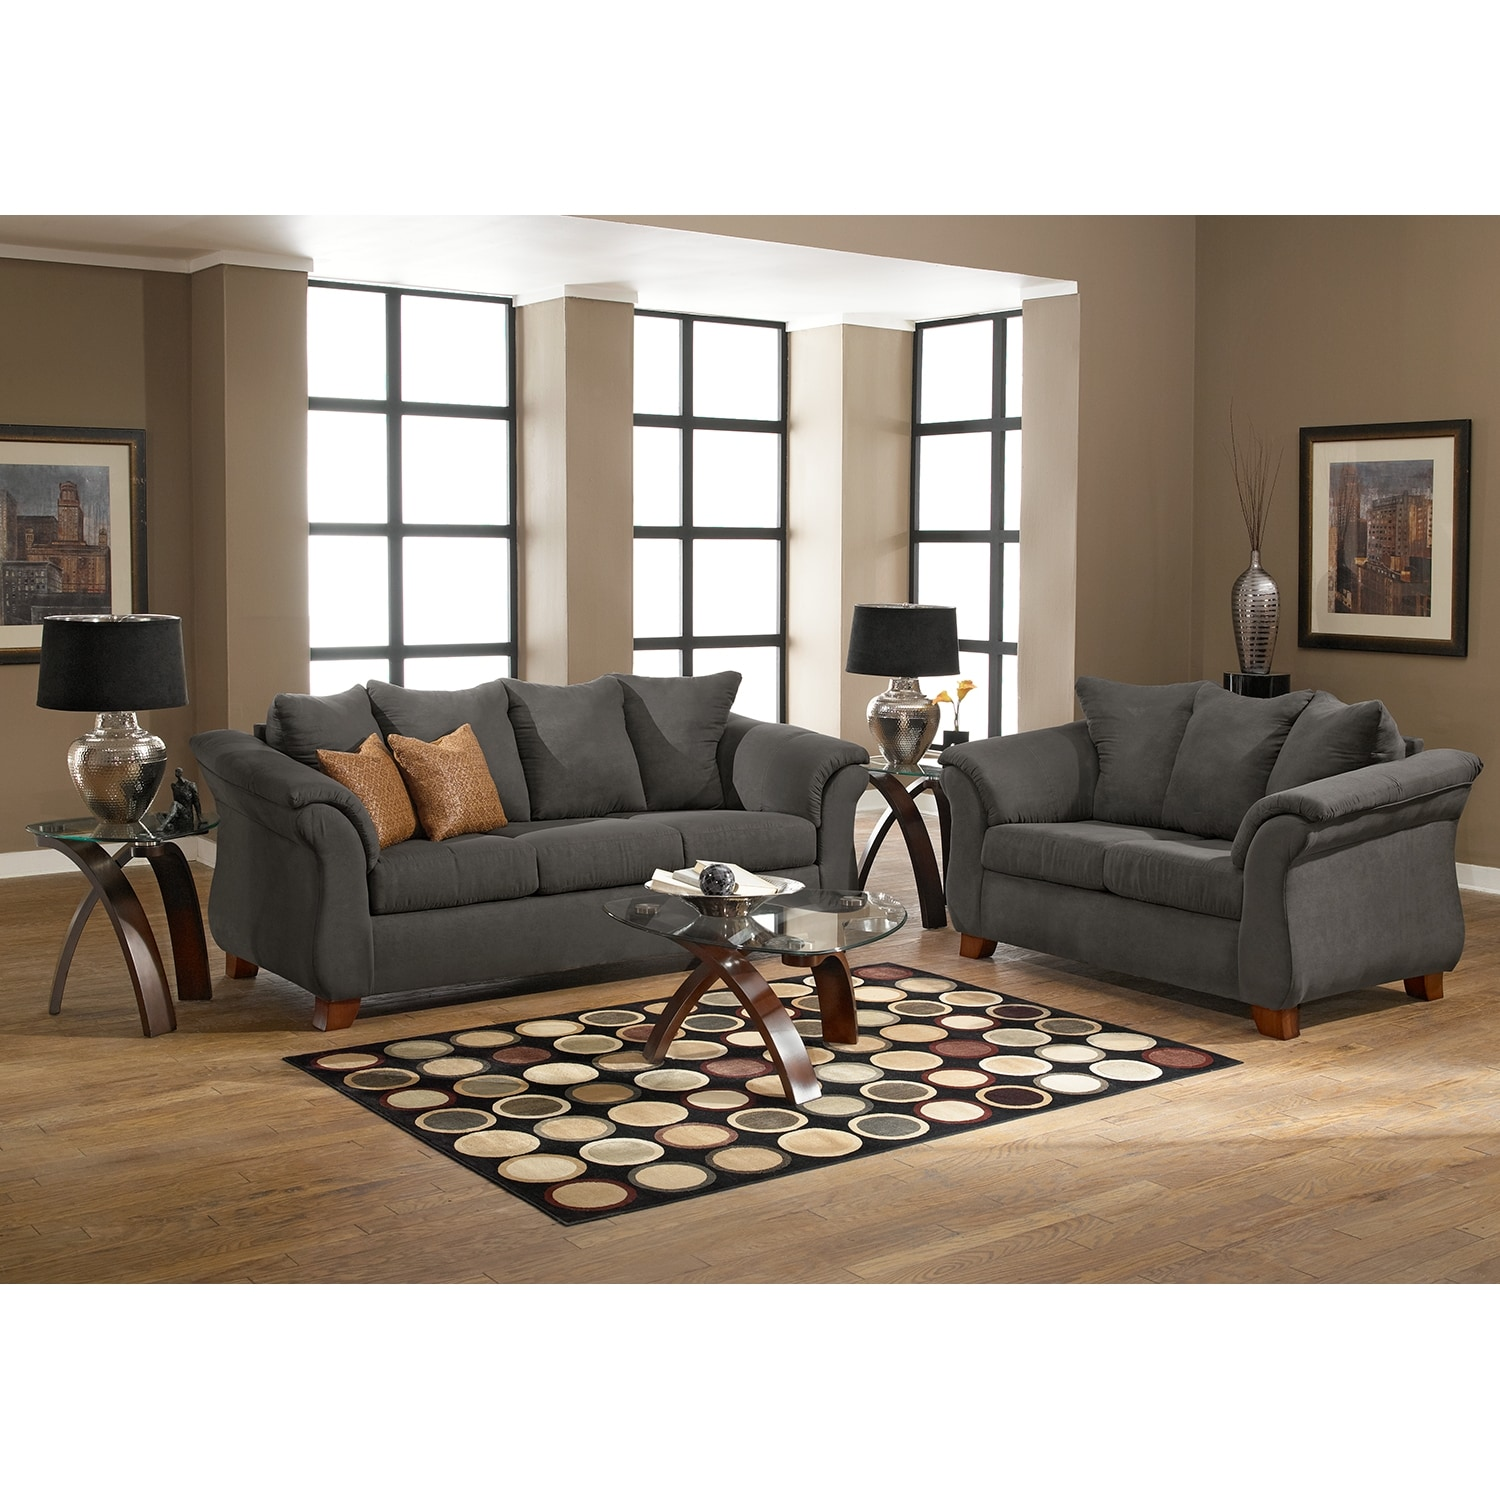 sofa and loveseat set Adrian Sofa and Loveseat Set   Graphite | Value City Furniture and  sofa and loveseat set